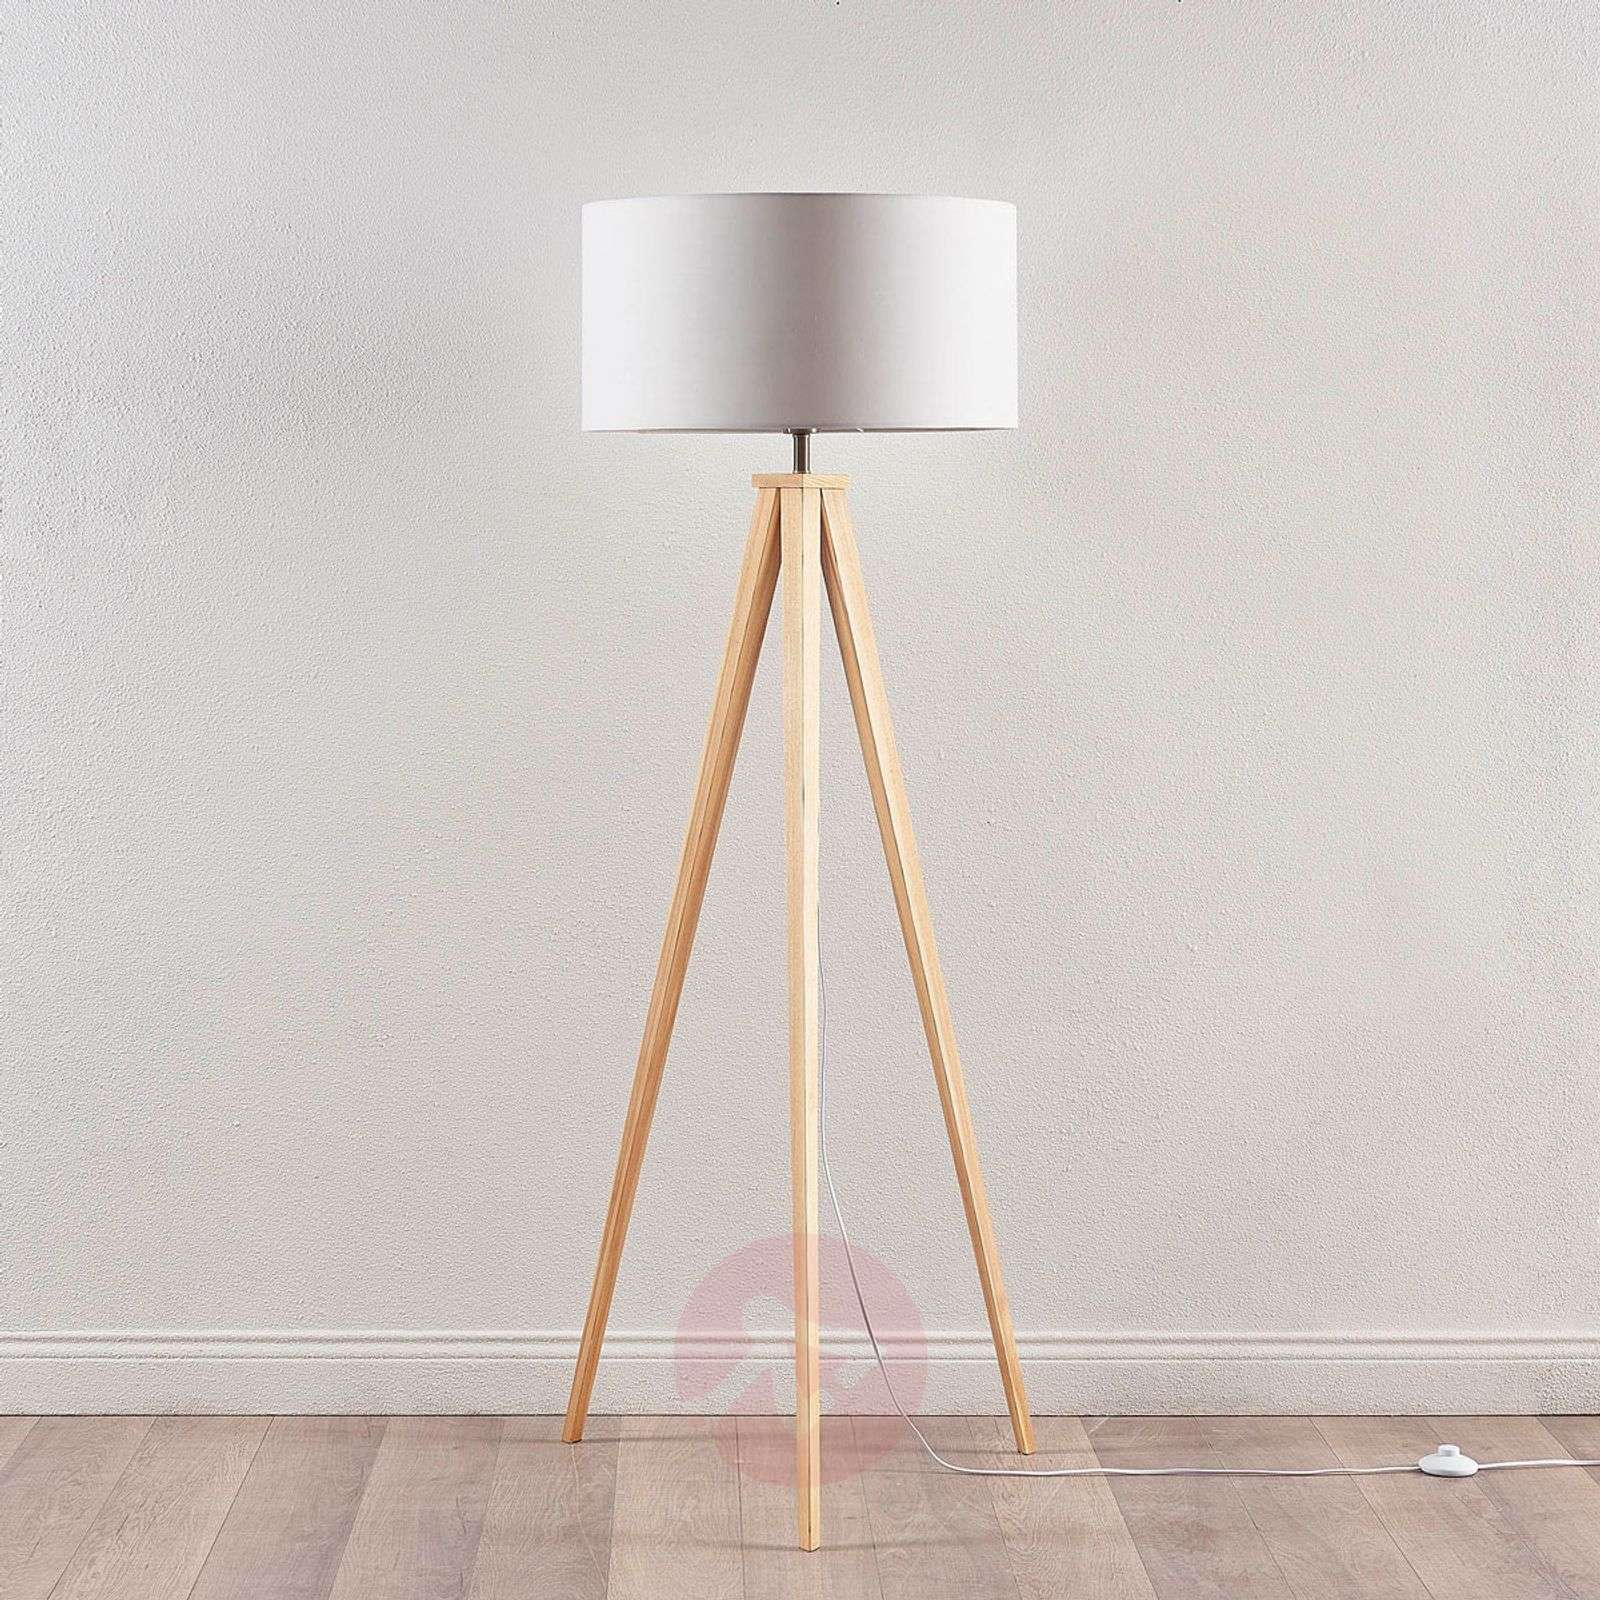 Tripod floor lamp Mya with a white lampshade-9621329-01